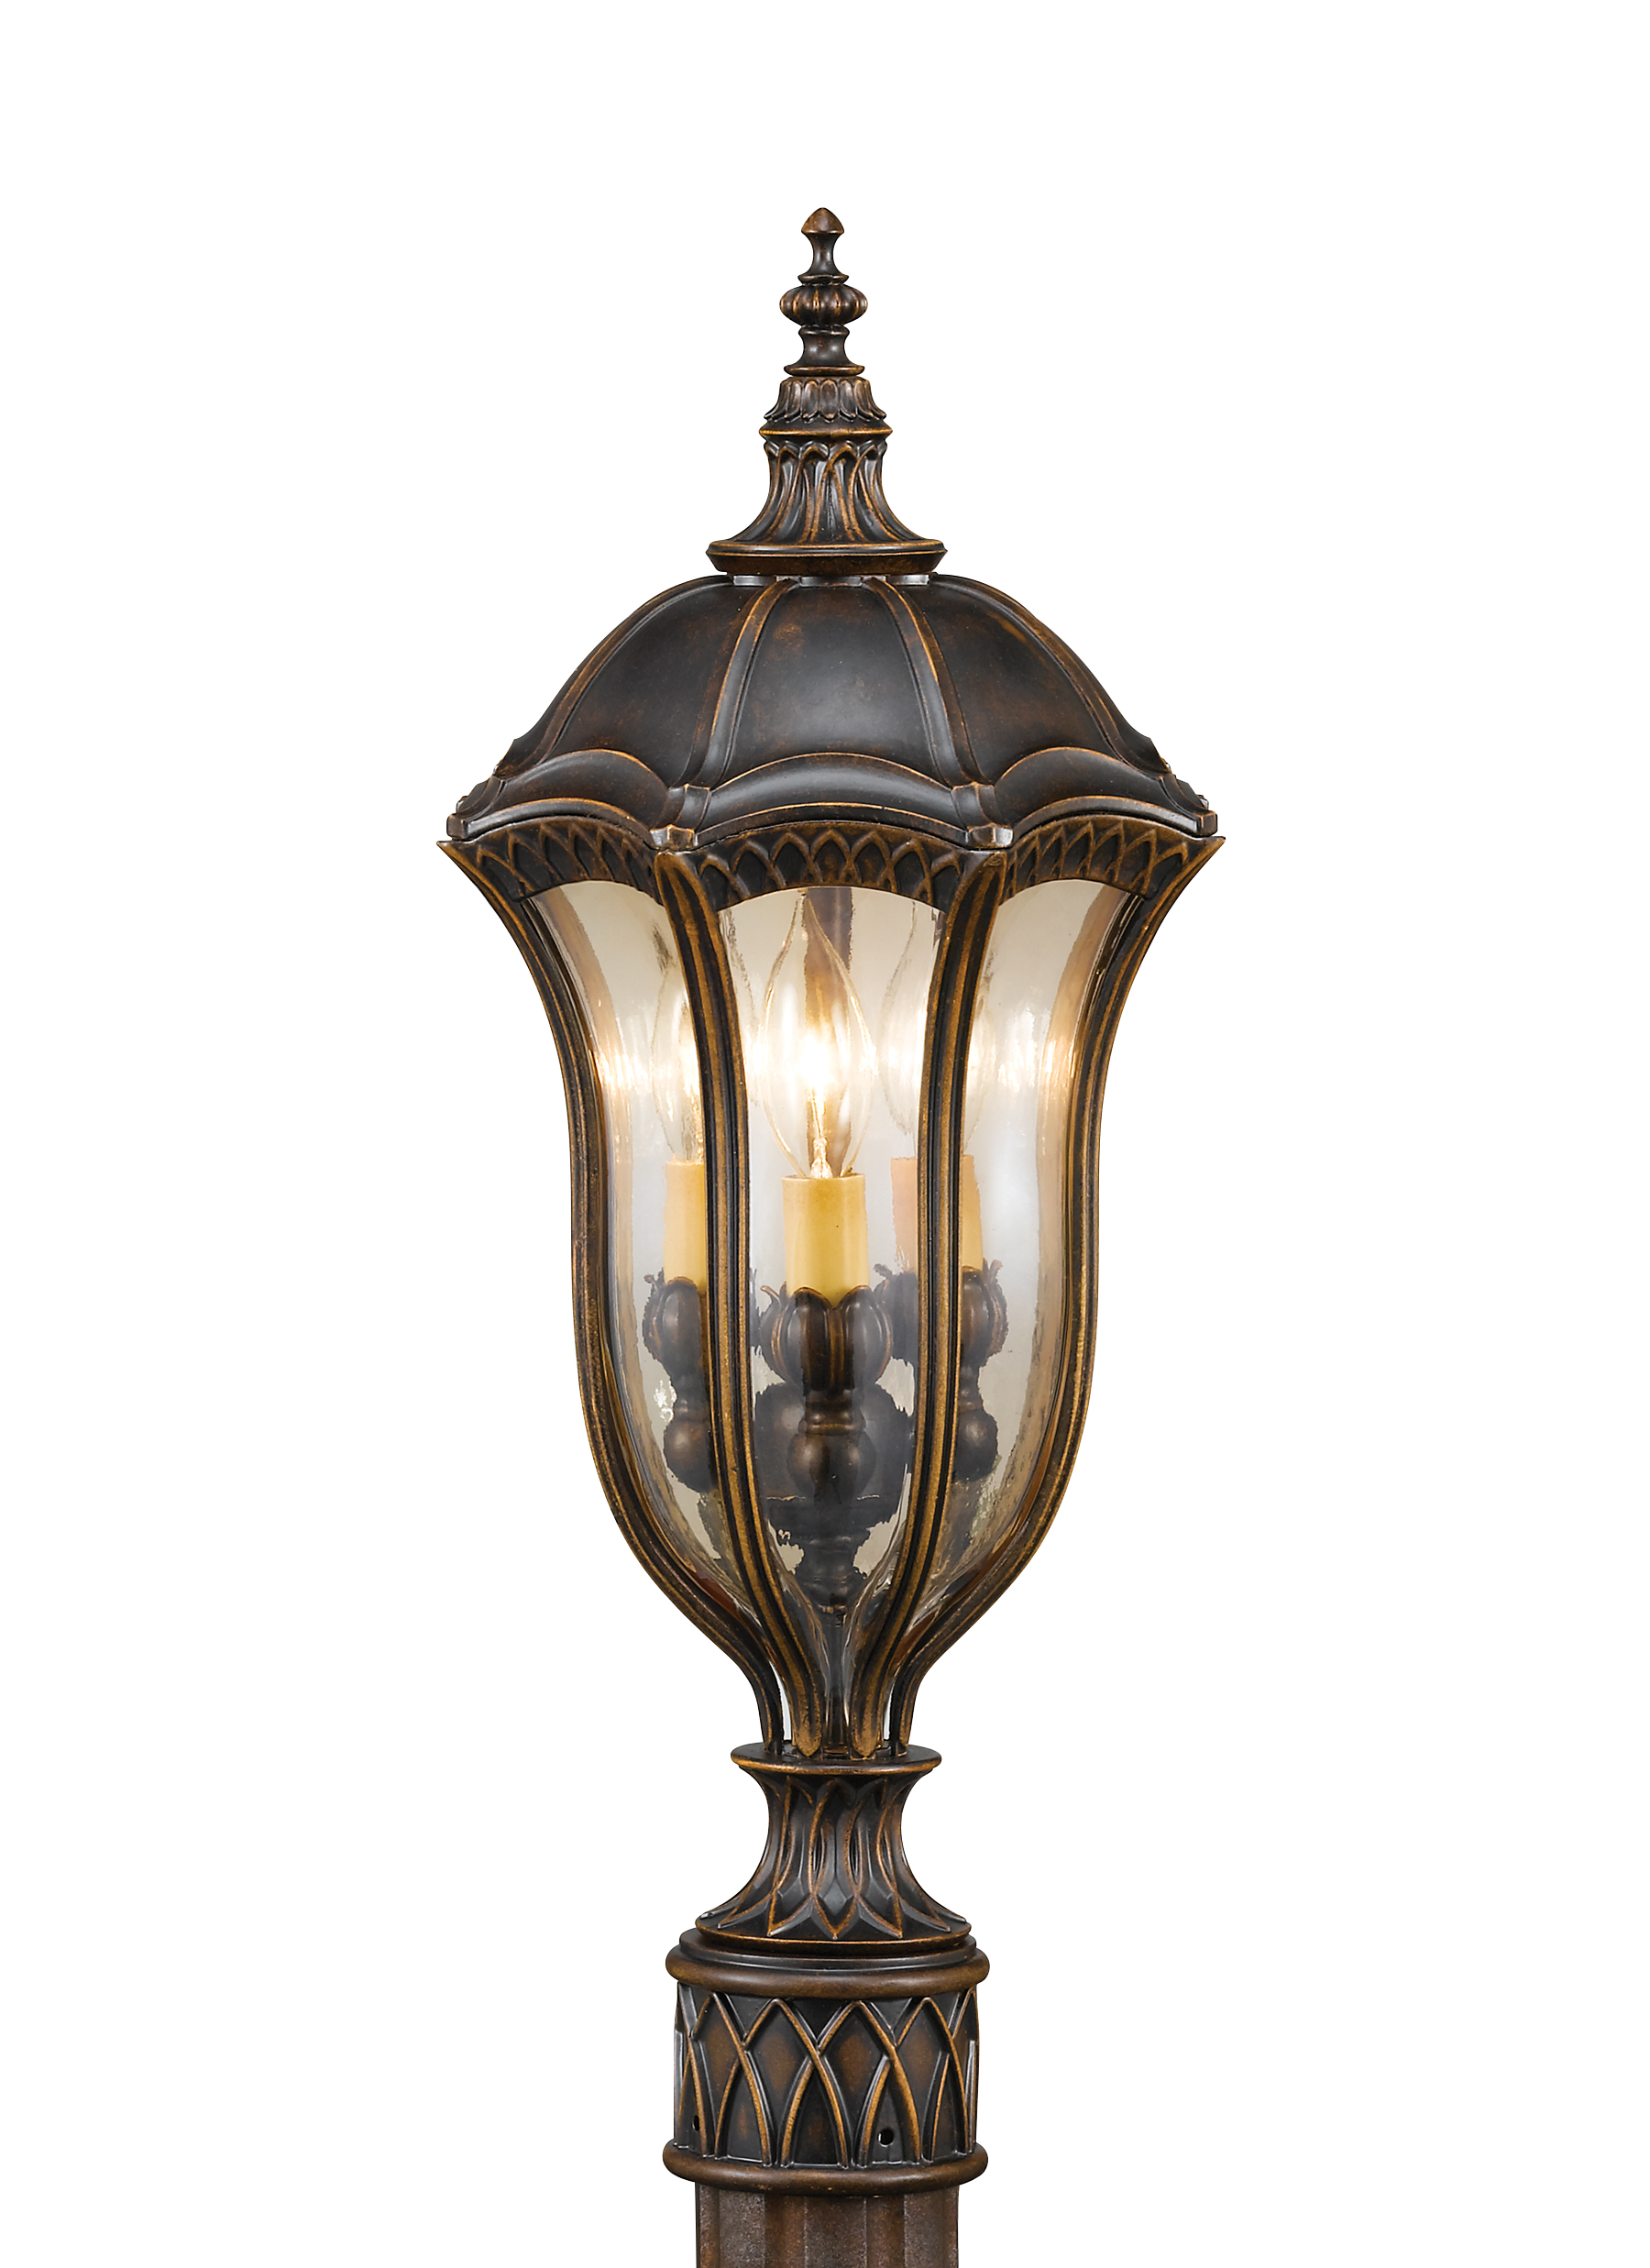 OL6007WAL,3 - Light Post,Walnut